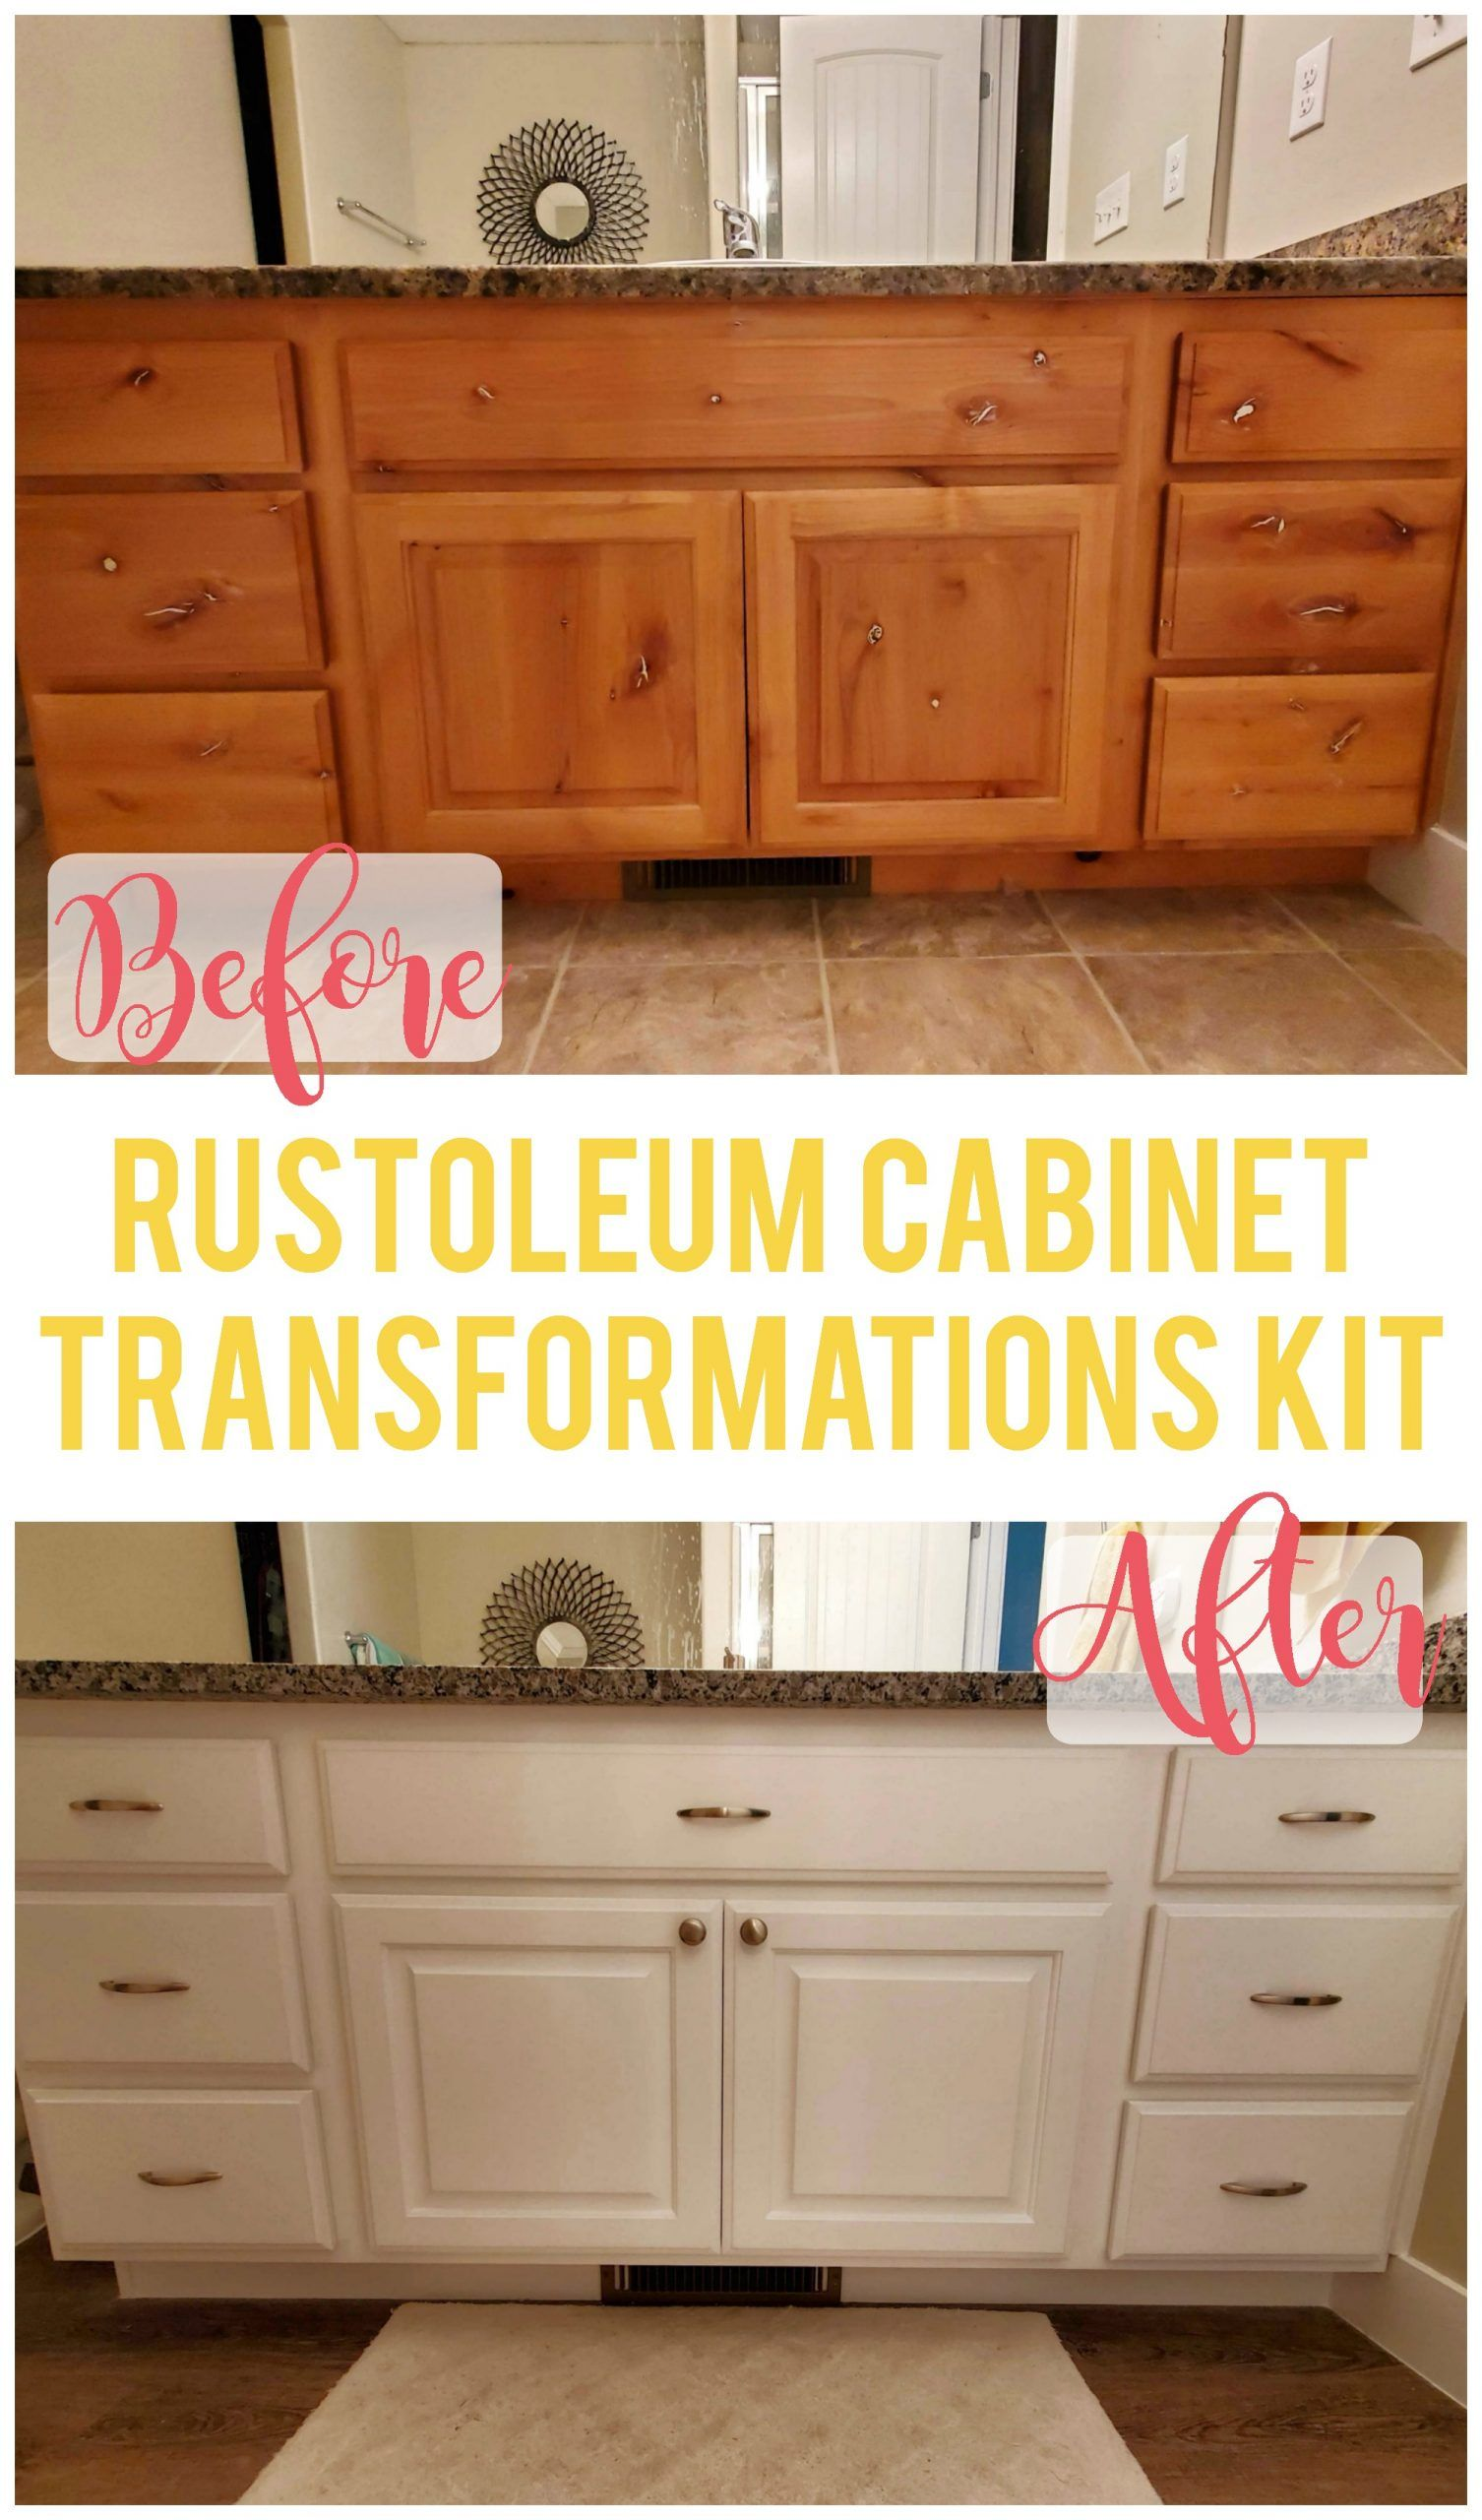 How To Use The Rustoleum Cabinet Transformations Kit Sunshine And Munchkins In 2020 Rustoleum Cabinet Transformation Rustoleum Cabinet Cabinet Transformations